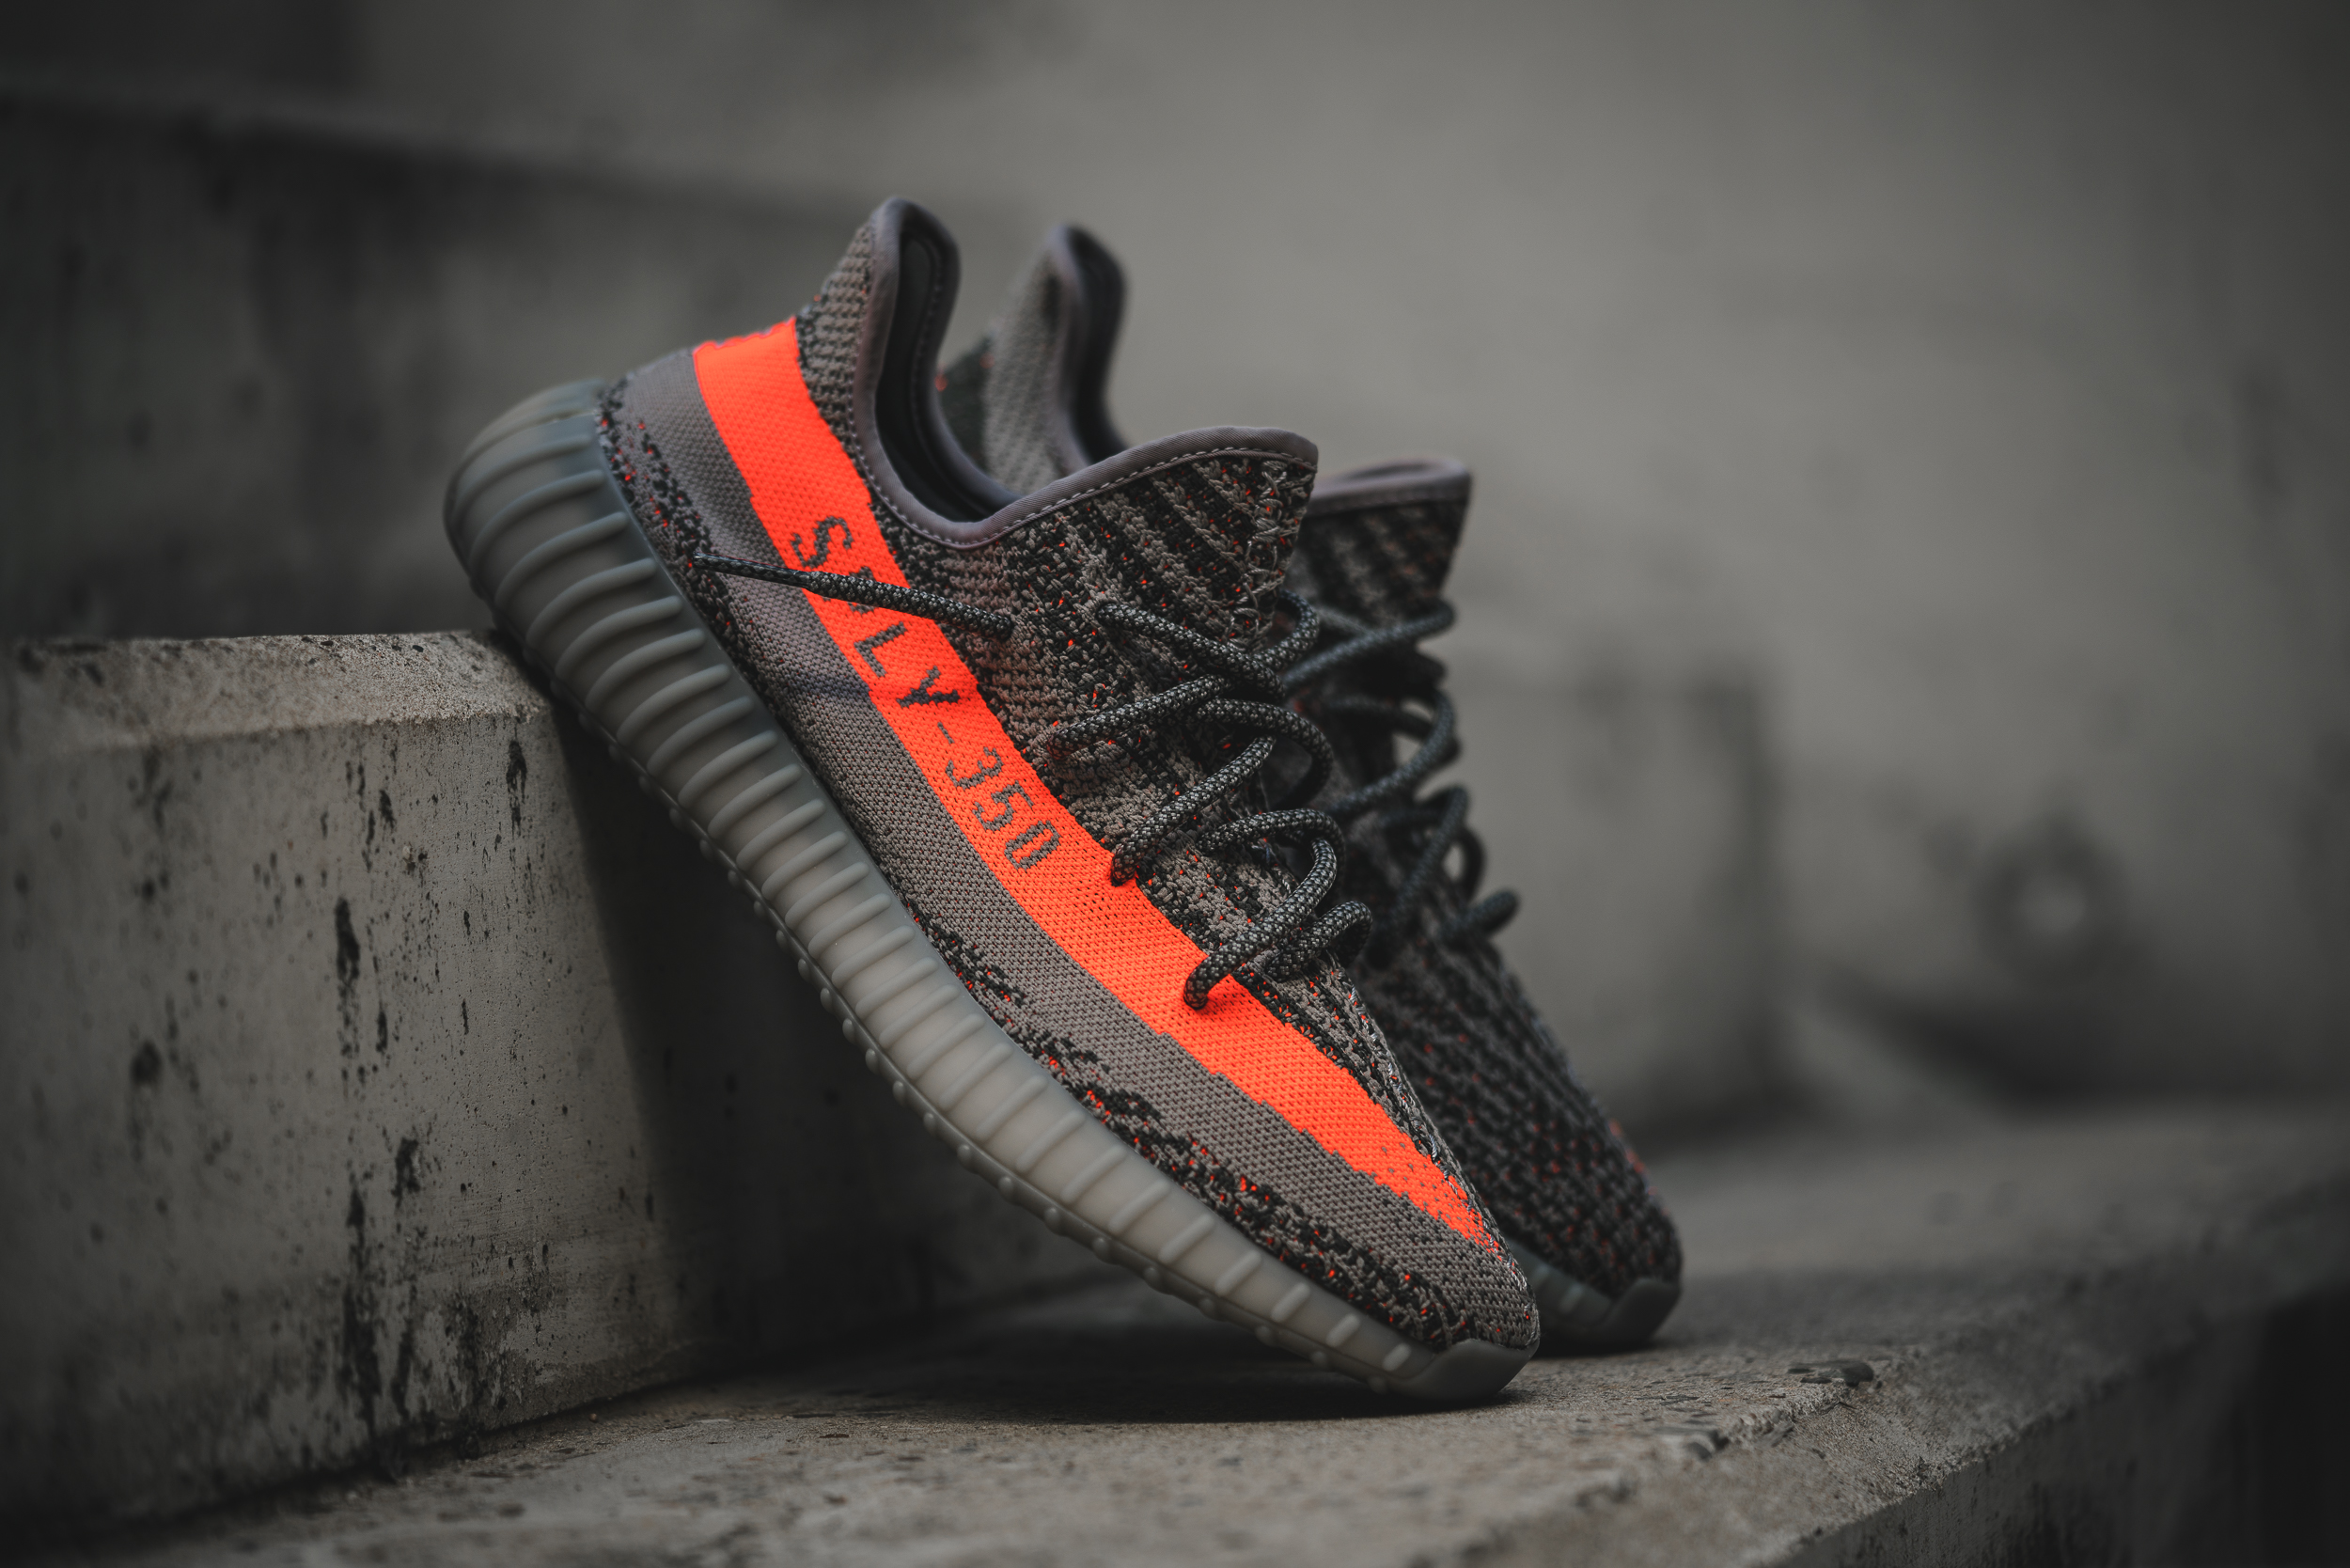 latest design better performance sportswear YEEZY Boost 350 V2 Fotos [SNIPES]   HYPES ARE US   hypesRus.com